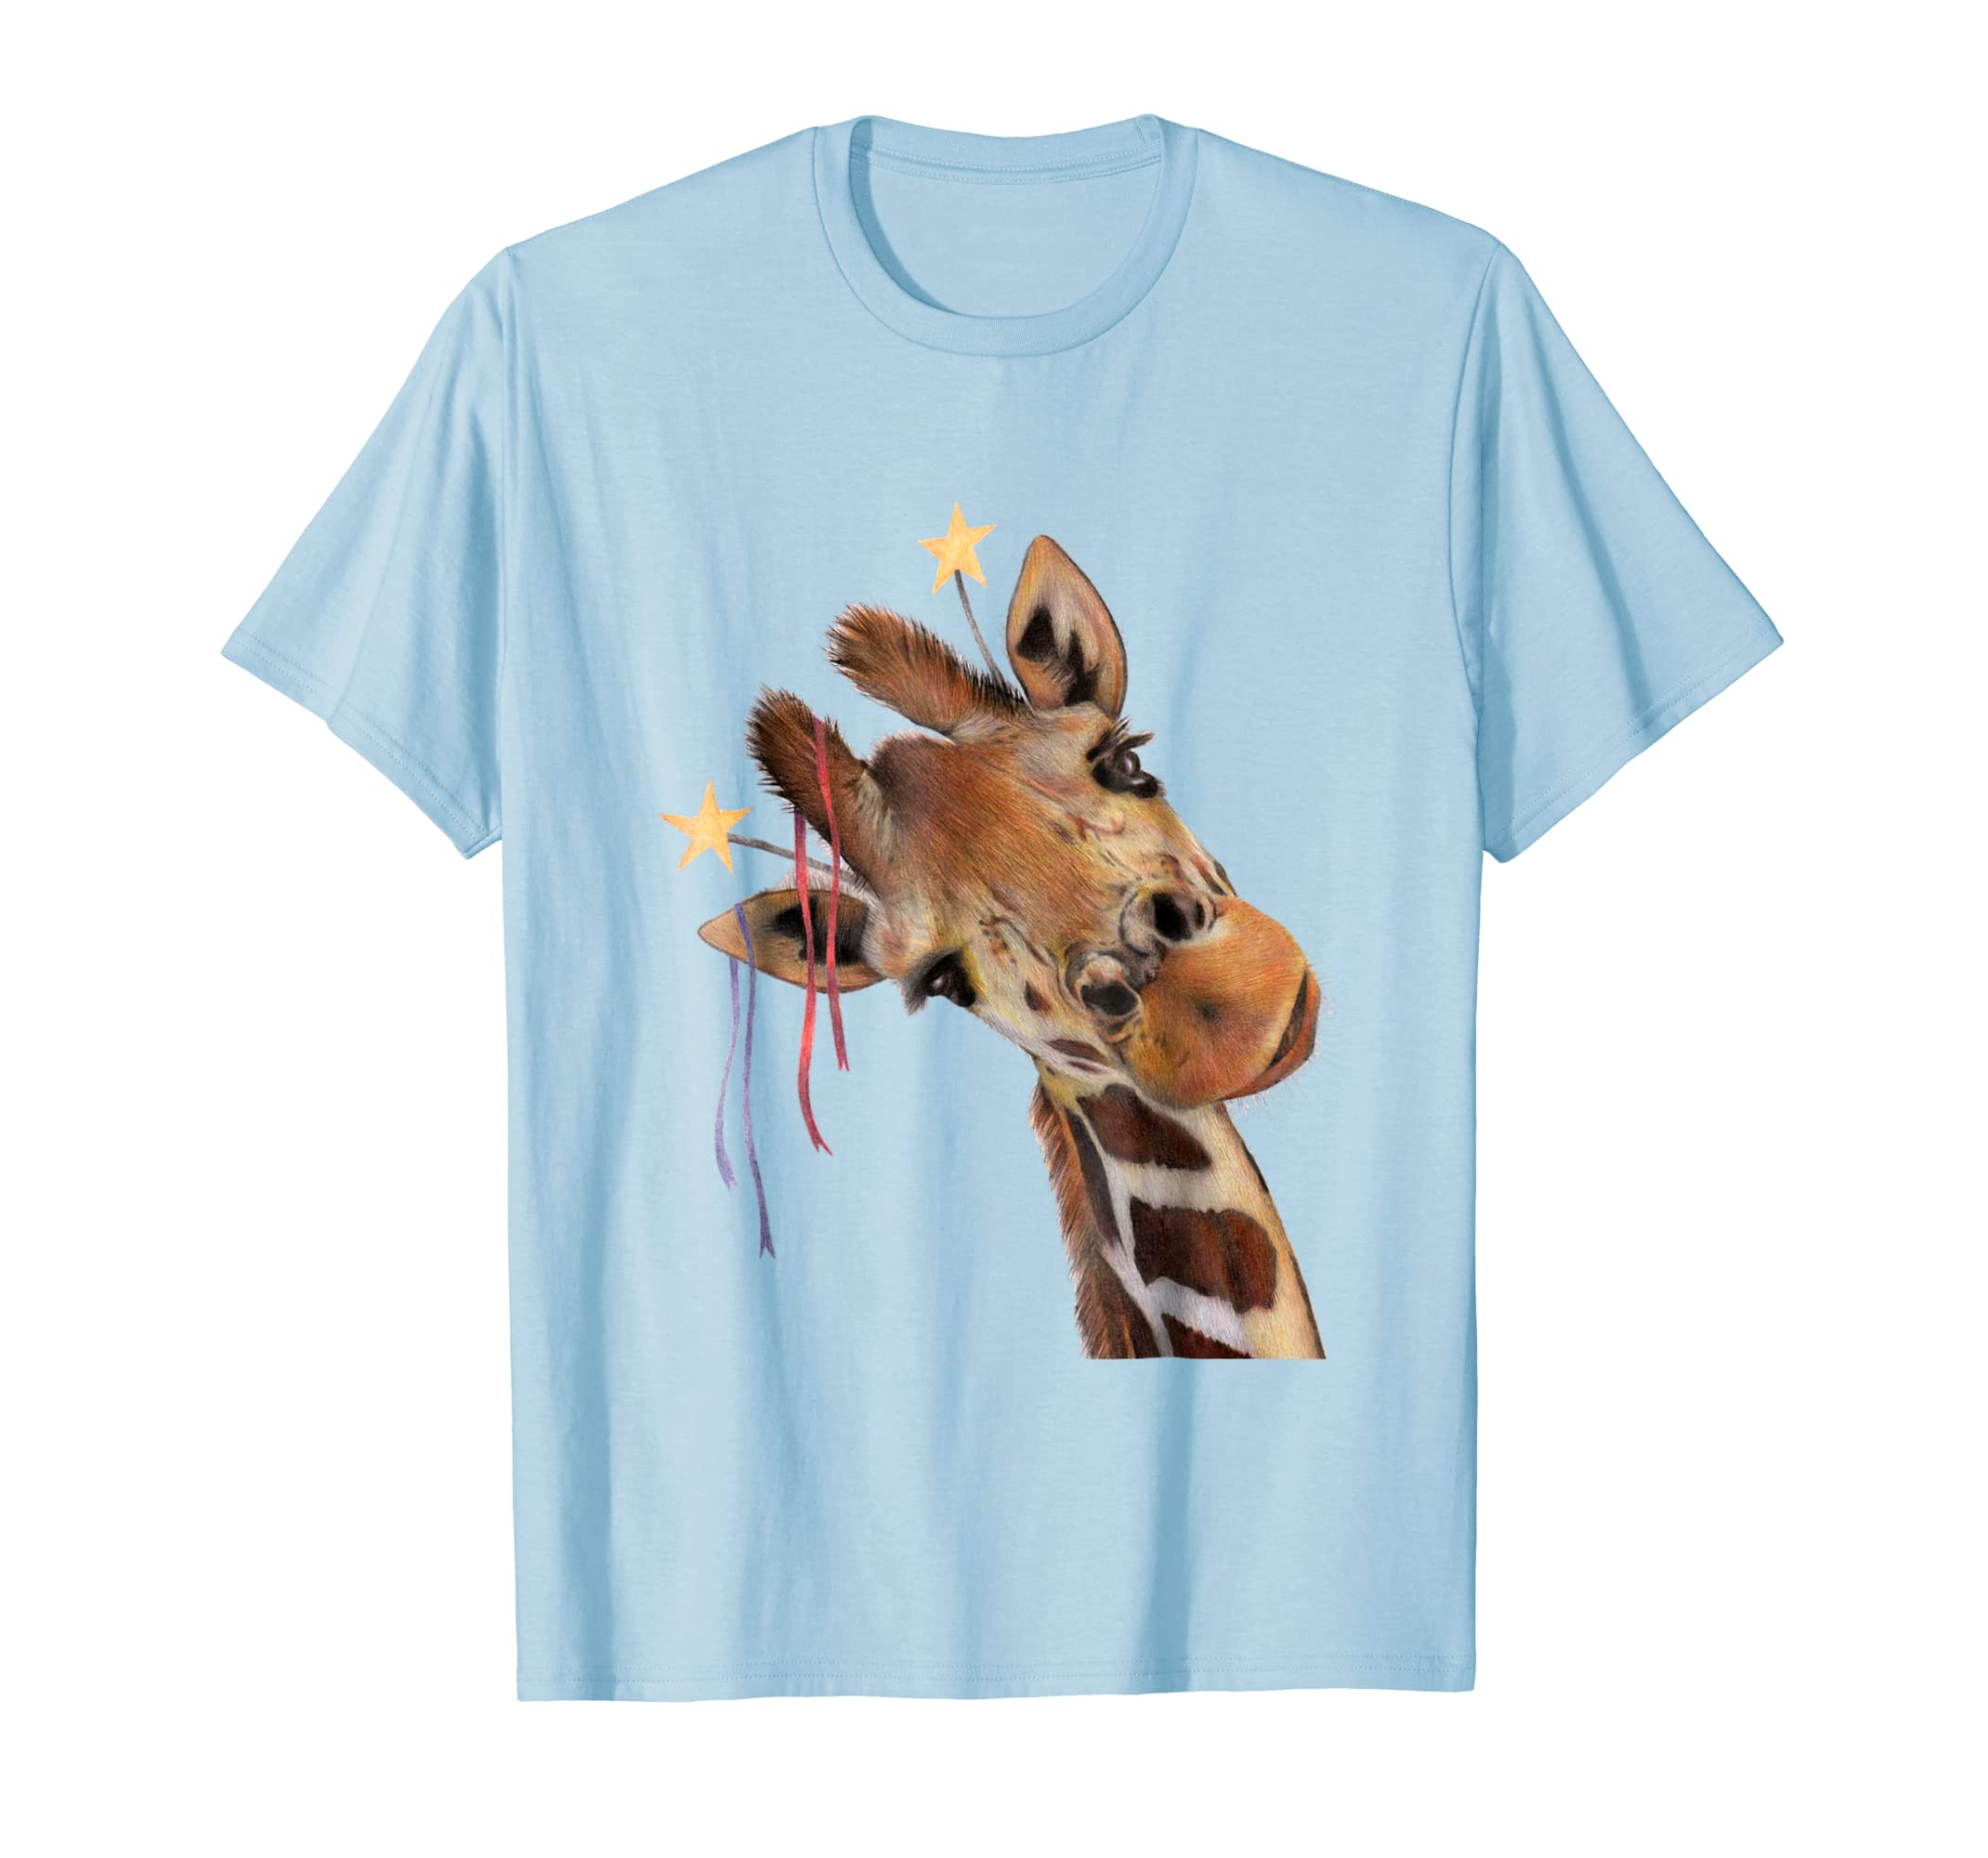 'Good Time Giraffe' Party Animal Drawing T Shirt Clothing-Teesml